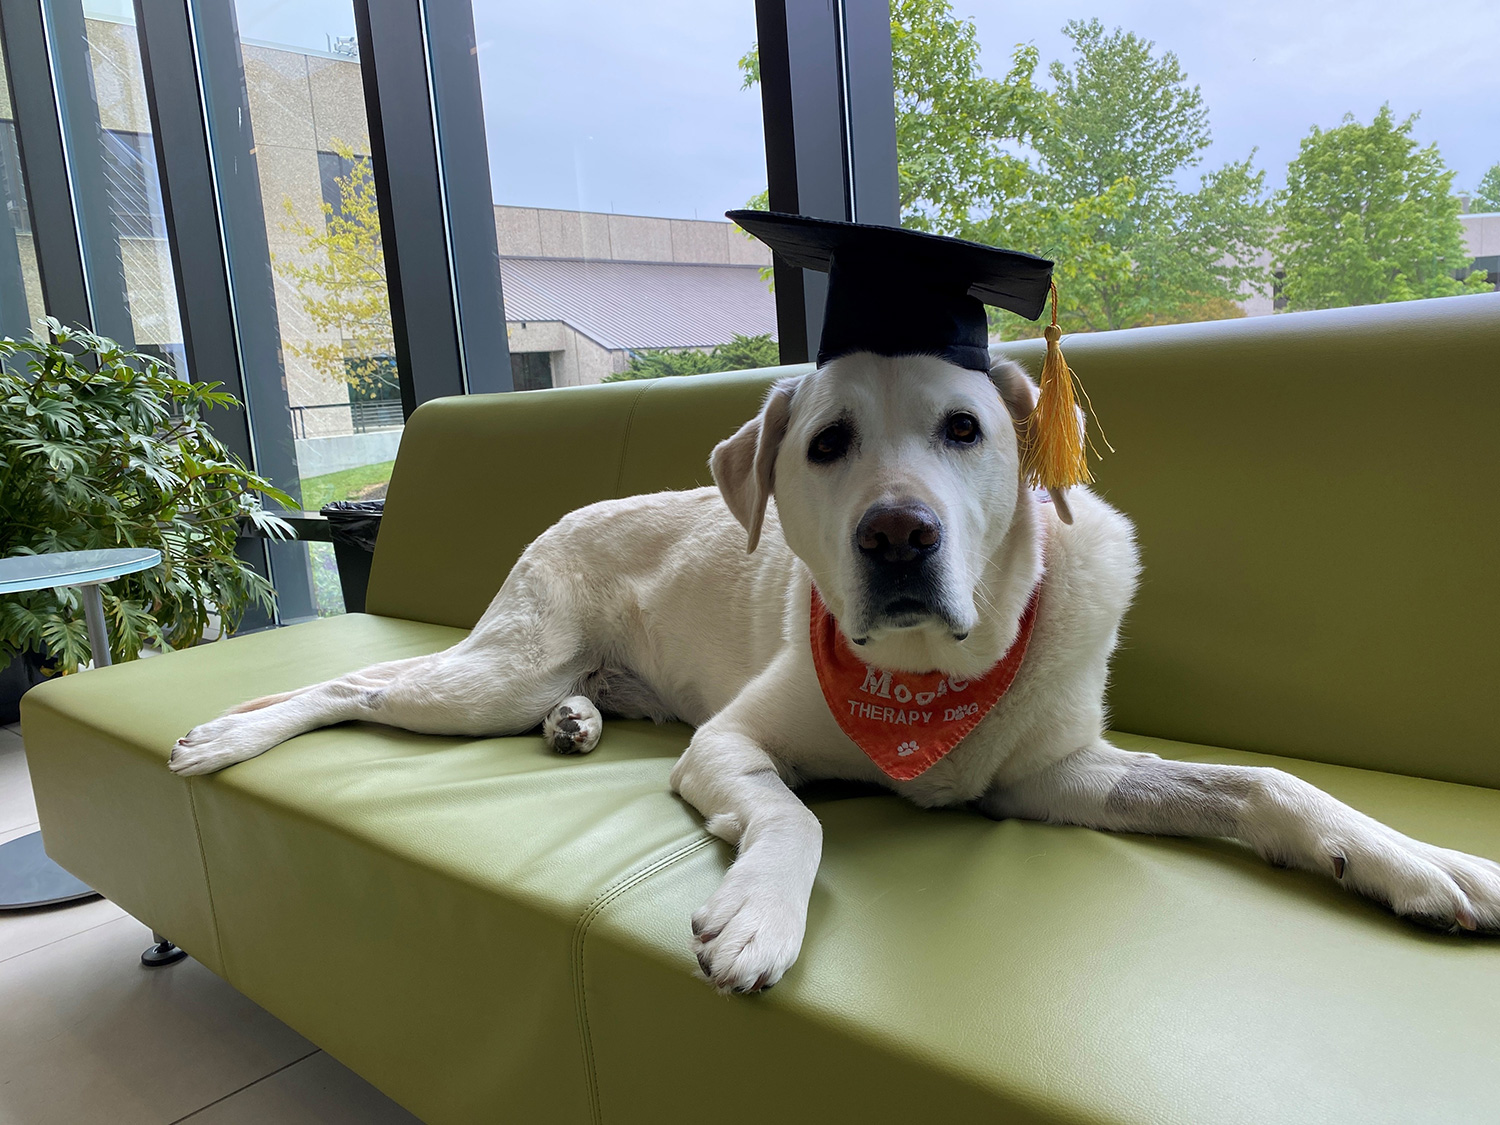 Moose the Virginia Tech therapy dog receives an honorary degree